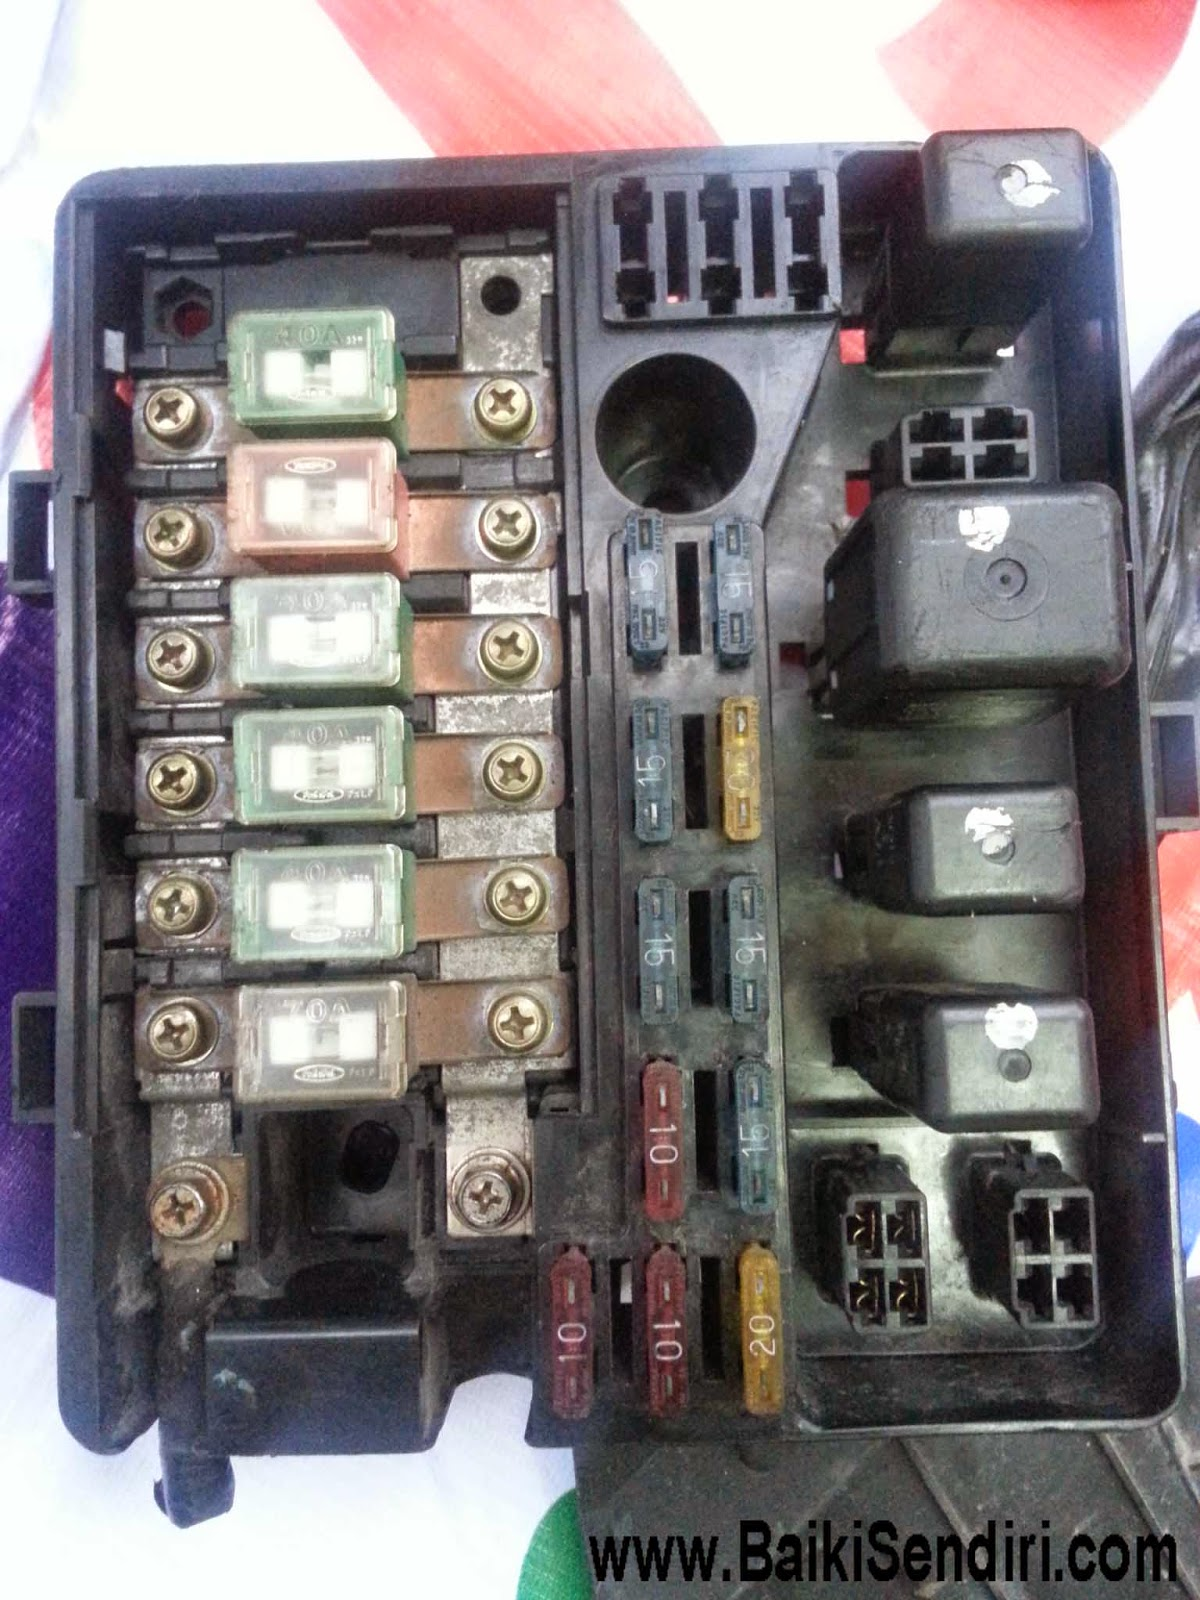 kancil fuse box diagram diy: fix on your own